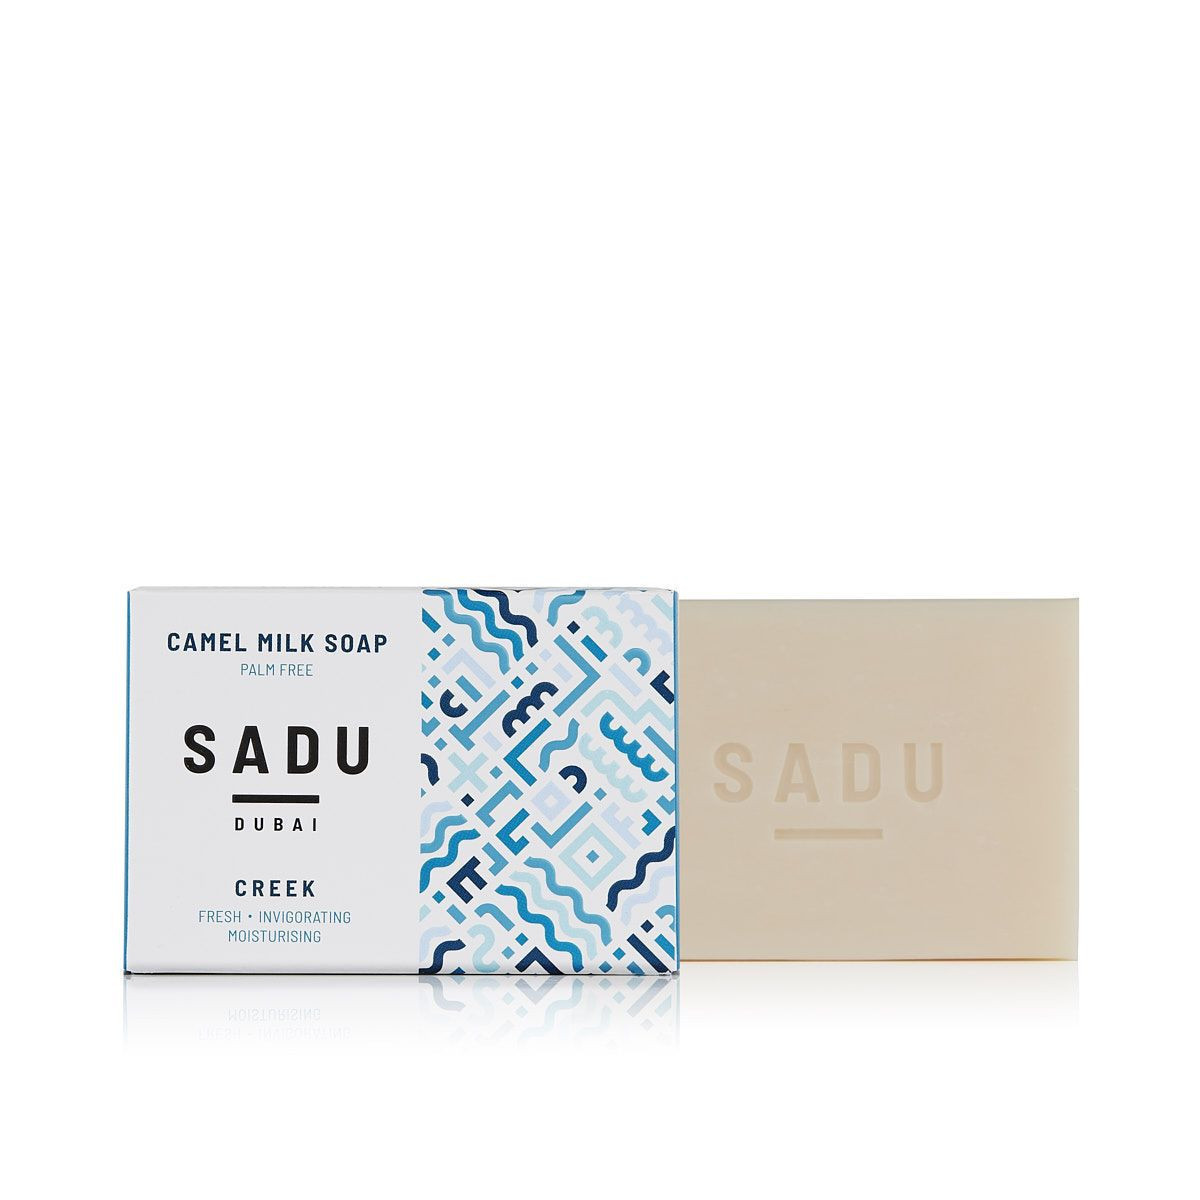 Camel milk soap Lime & Geranium - SADU collection